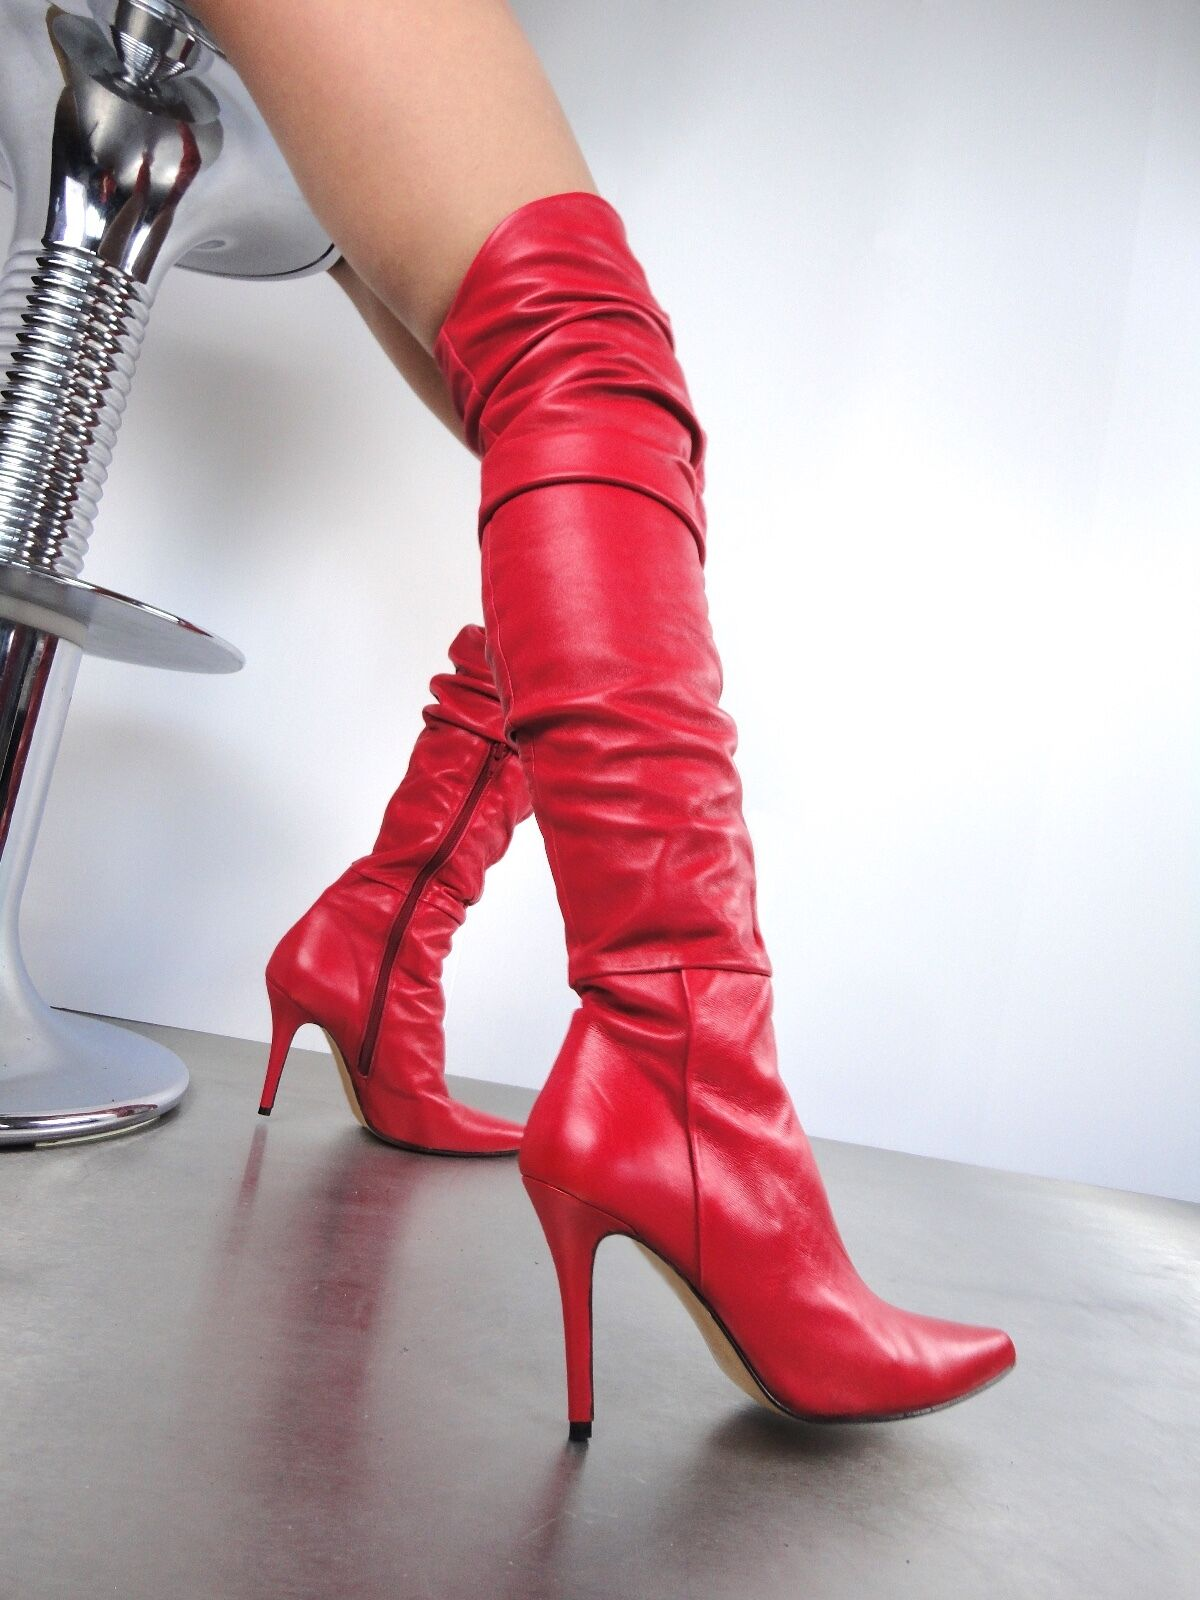 GIOHEL ITALY OVERKNEE HIGH HEELS BOOTS STIEFEL STIVALI REAL LEATHER RED ROSSO 37